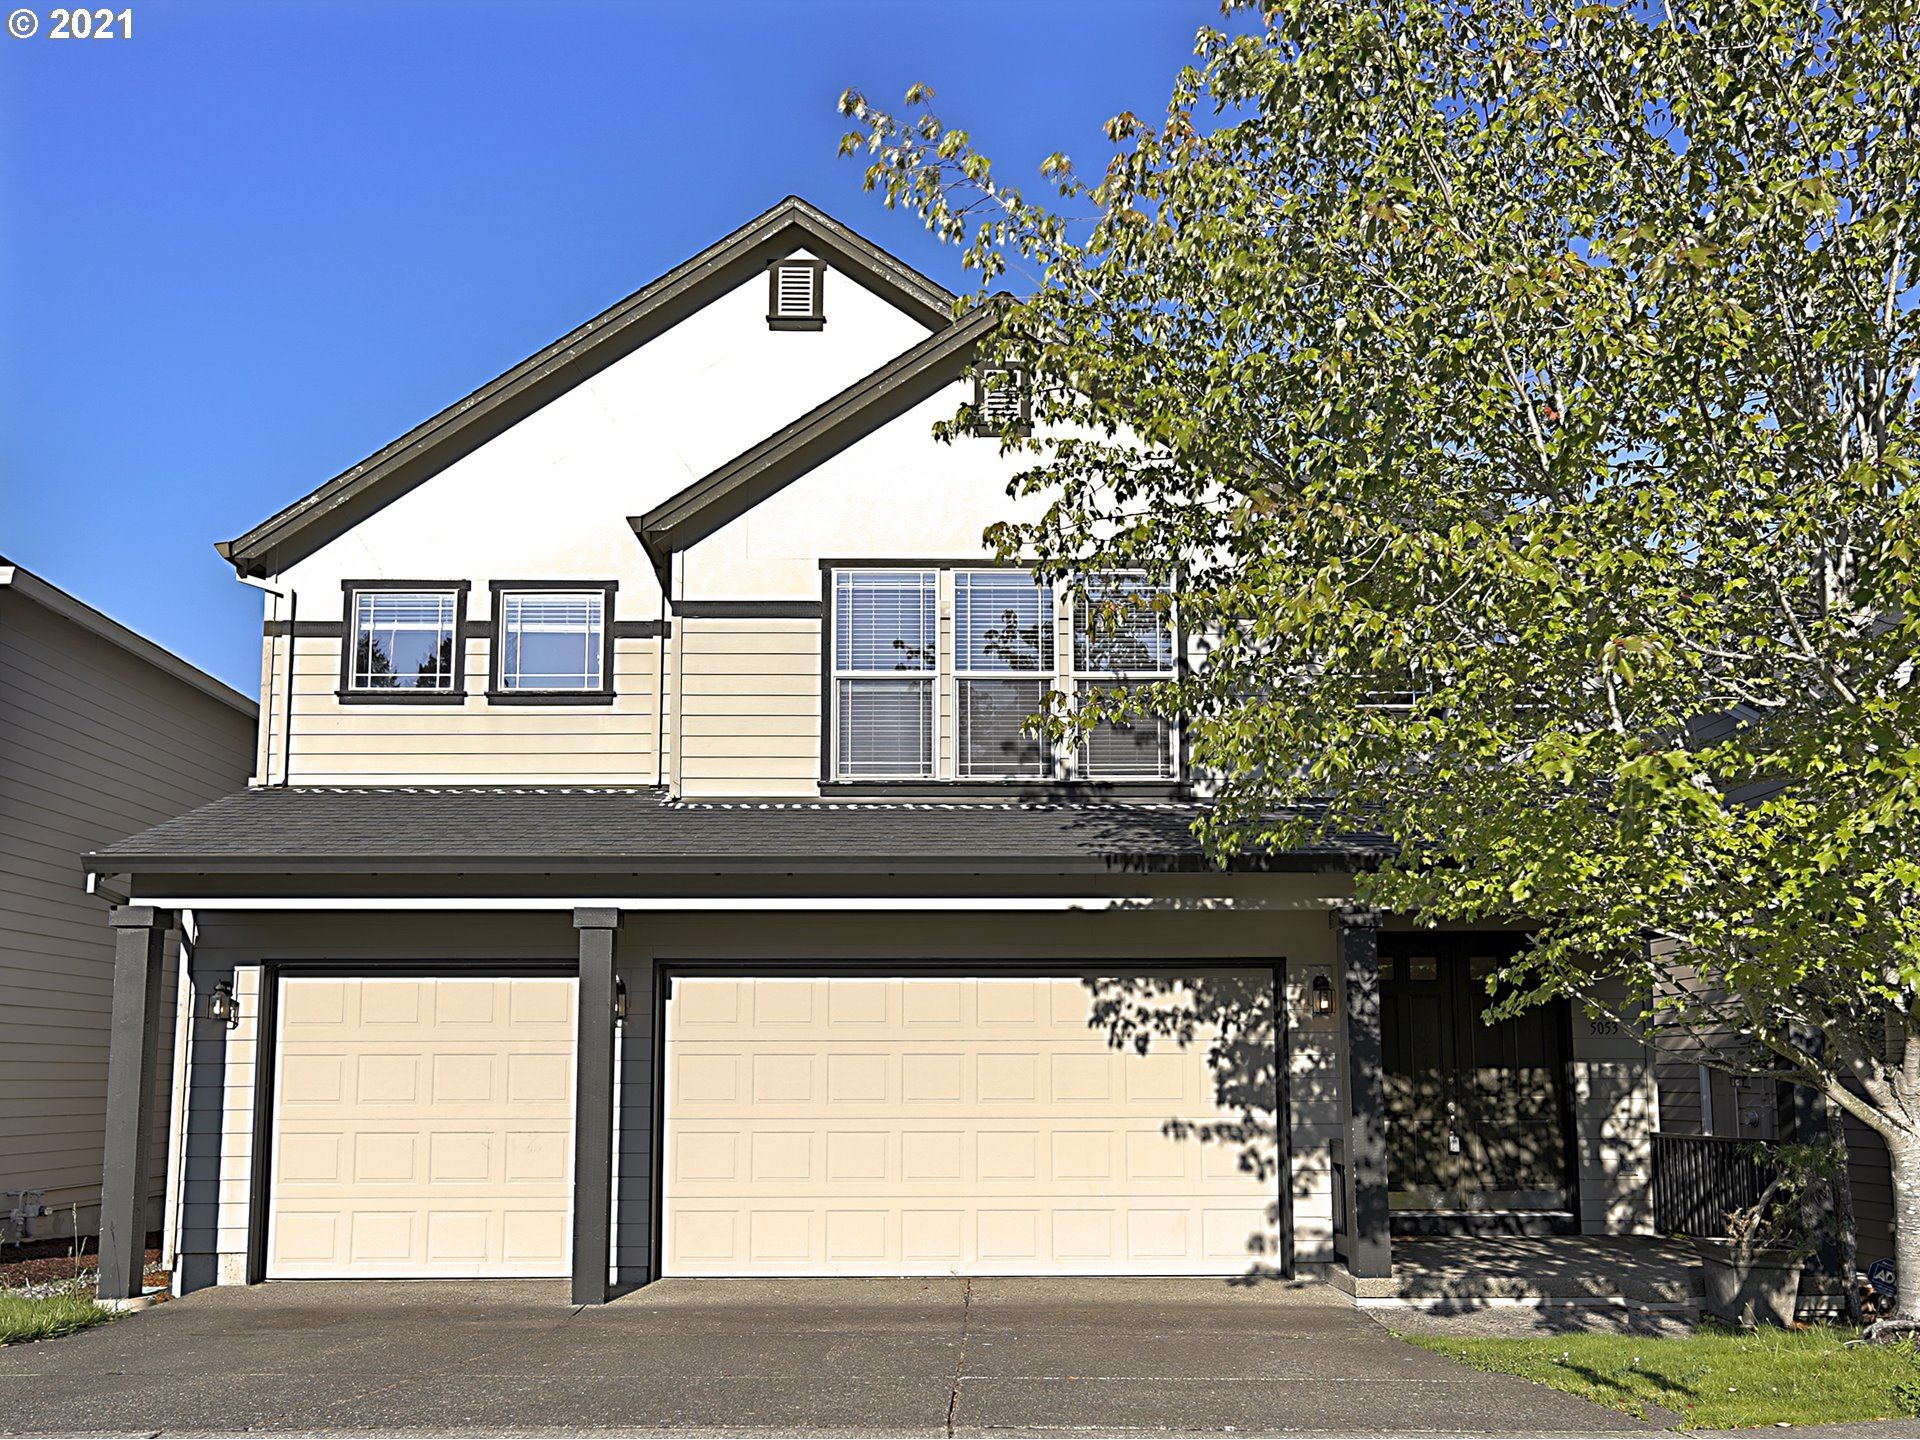 5053 NW BANNISTER DR, Portland, OR 97229 - MLS#: 21037575